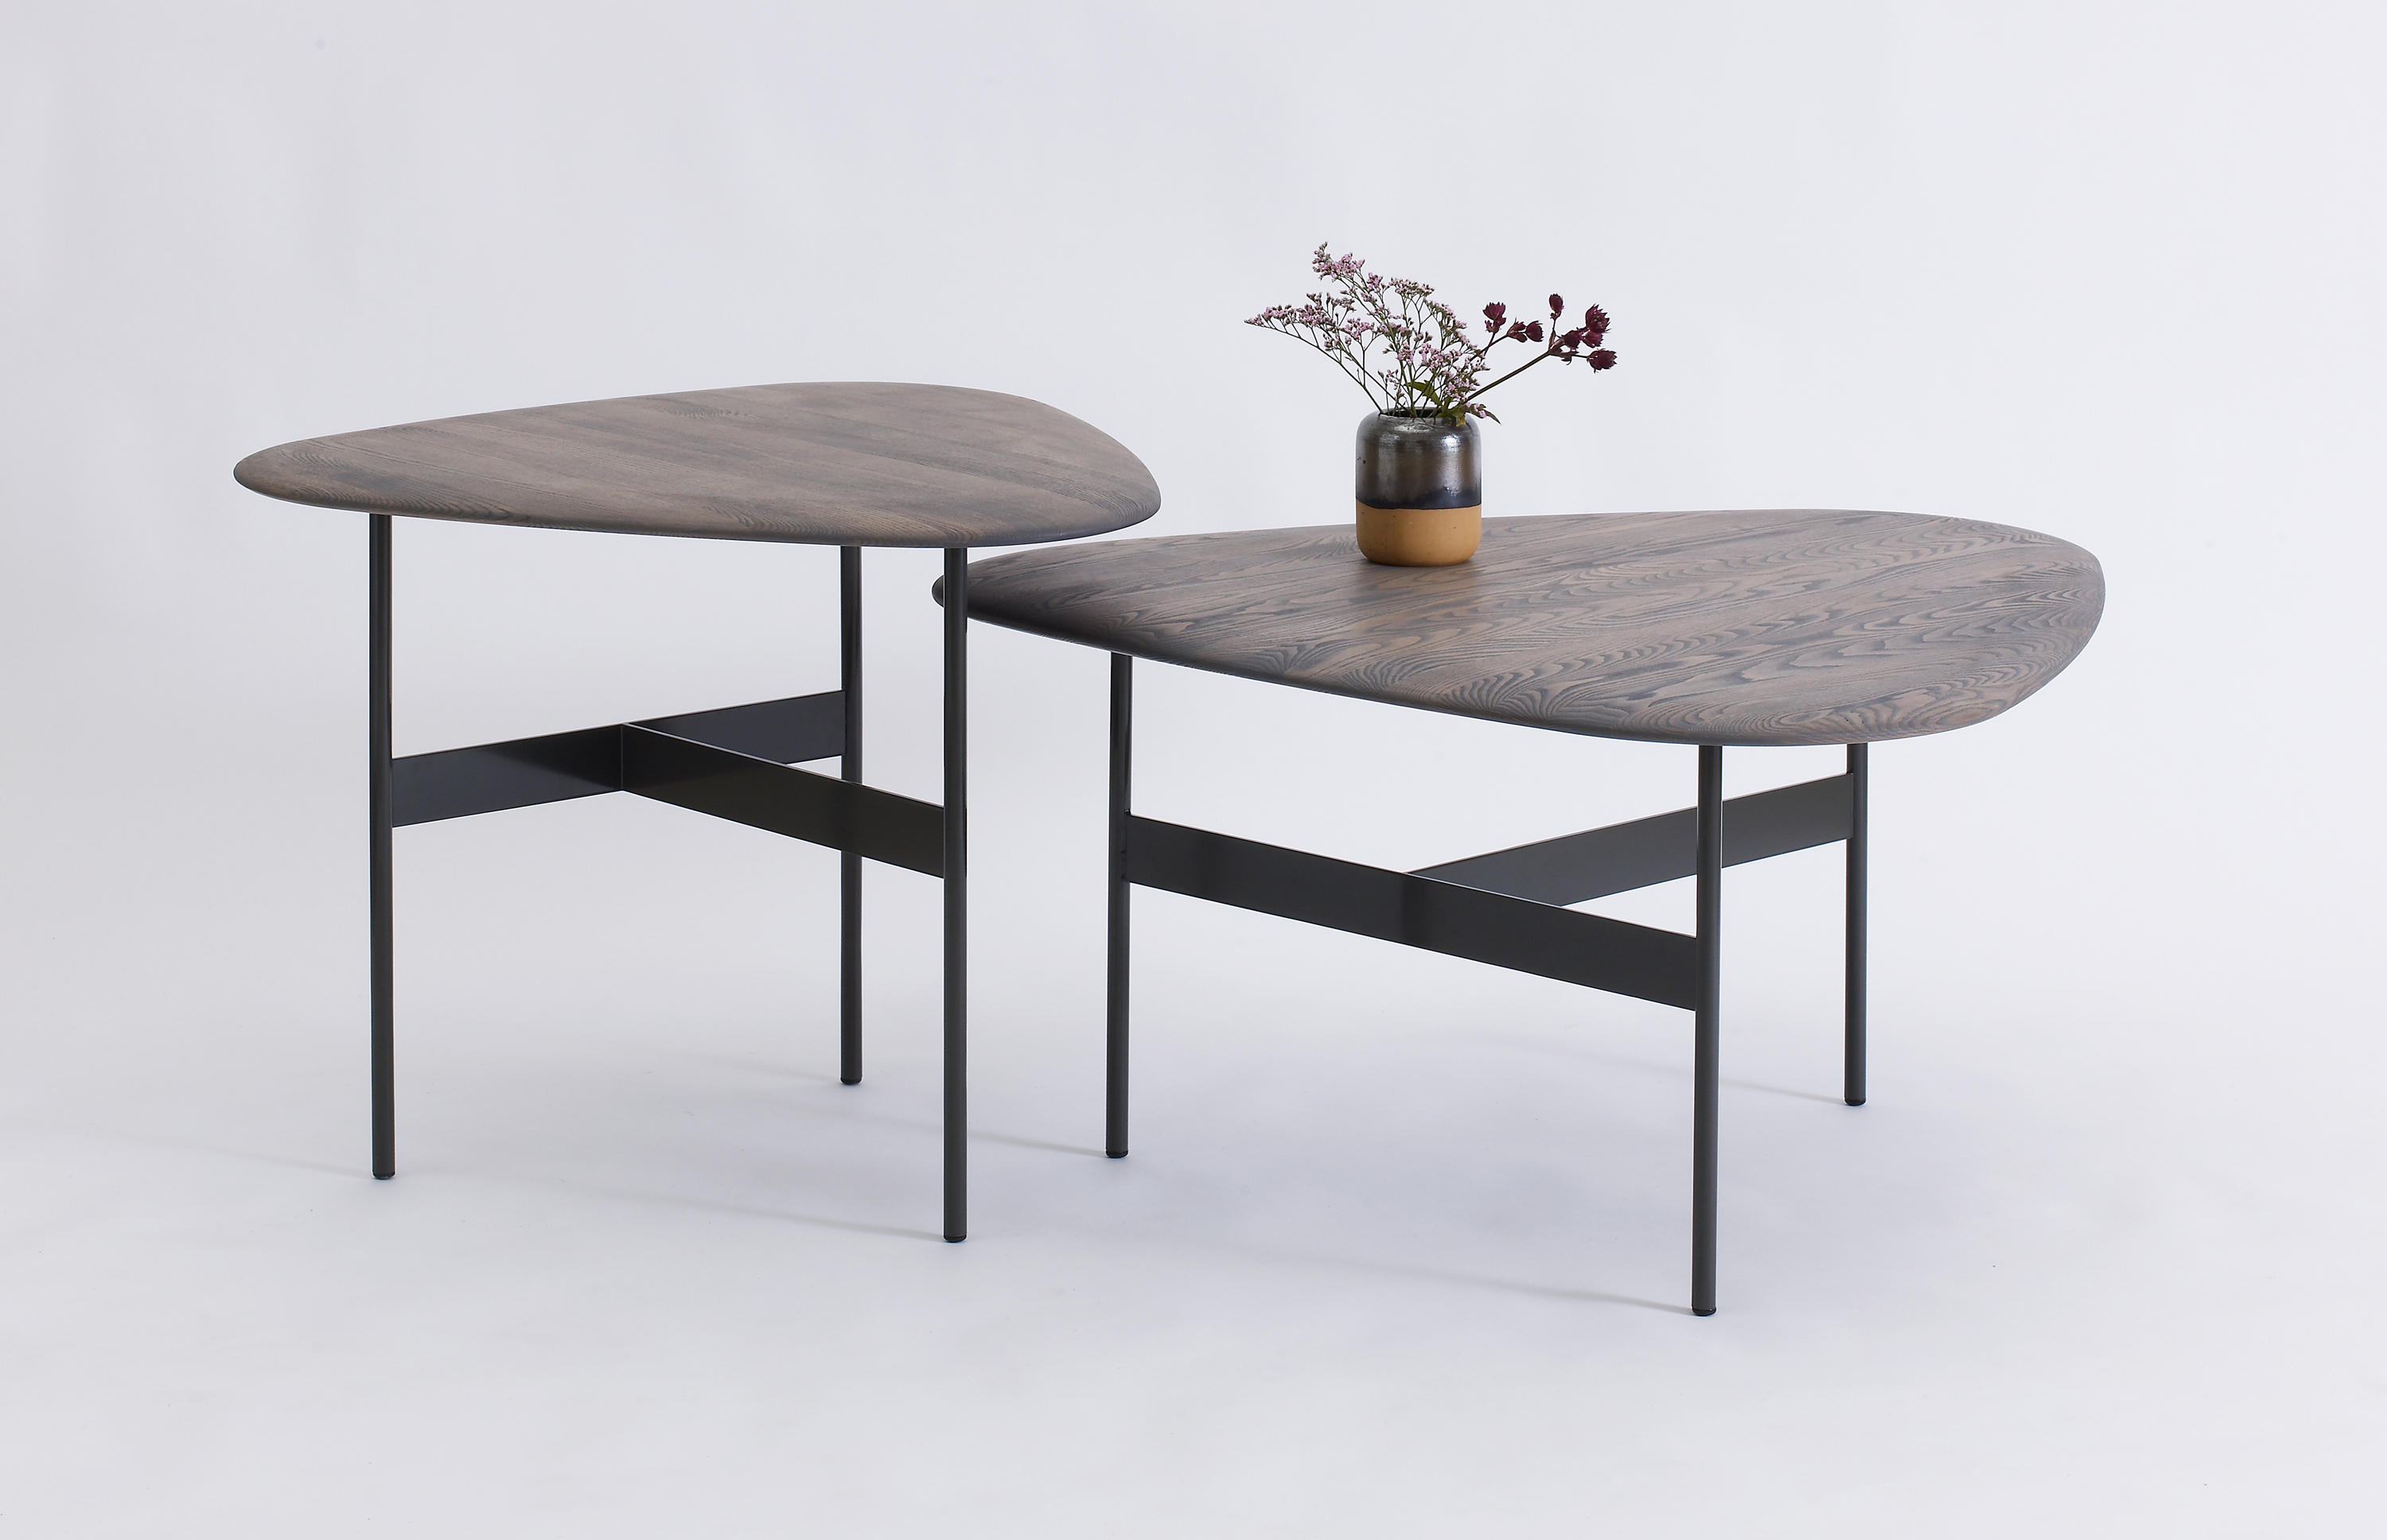 Plectra high sofa table side tables from asplund for Sofa table higher than sofa